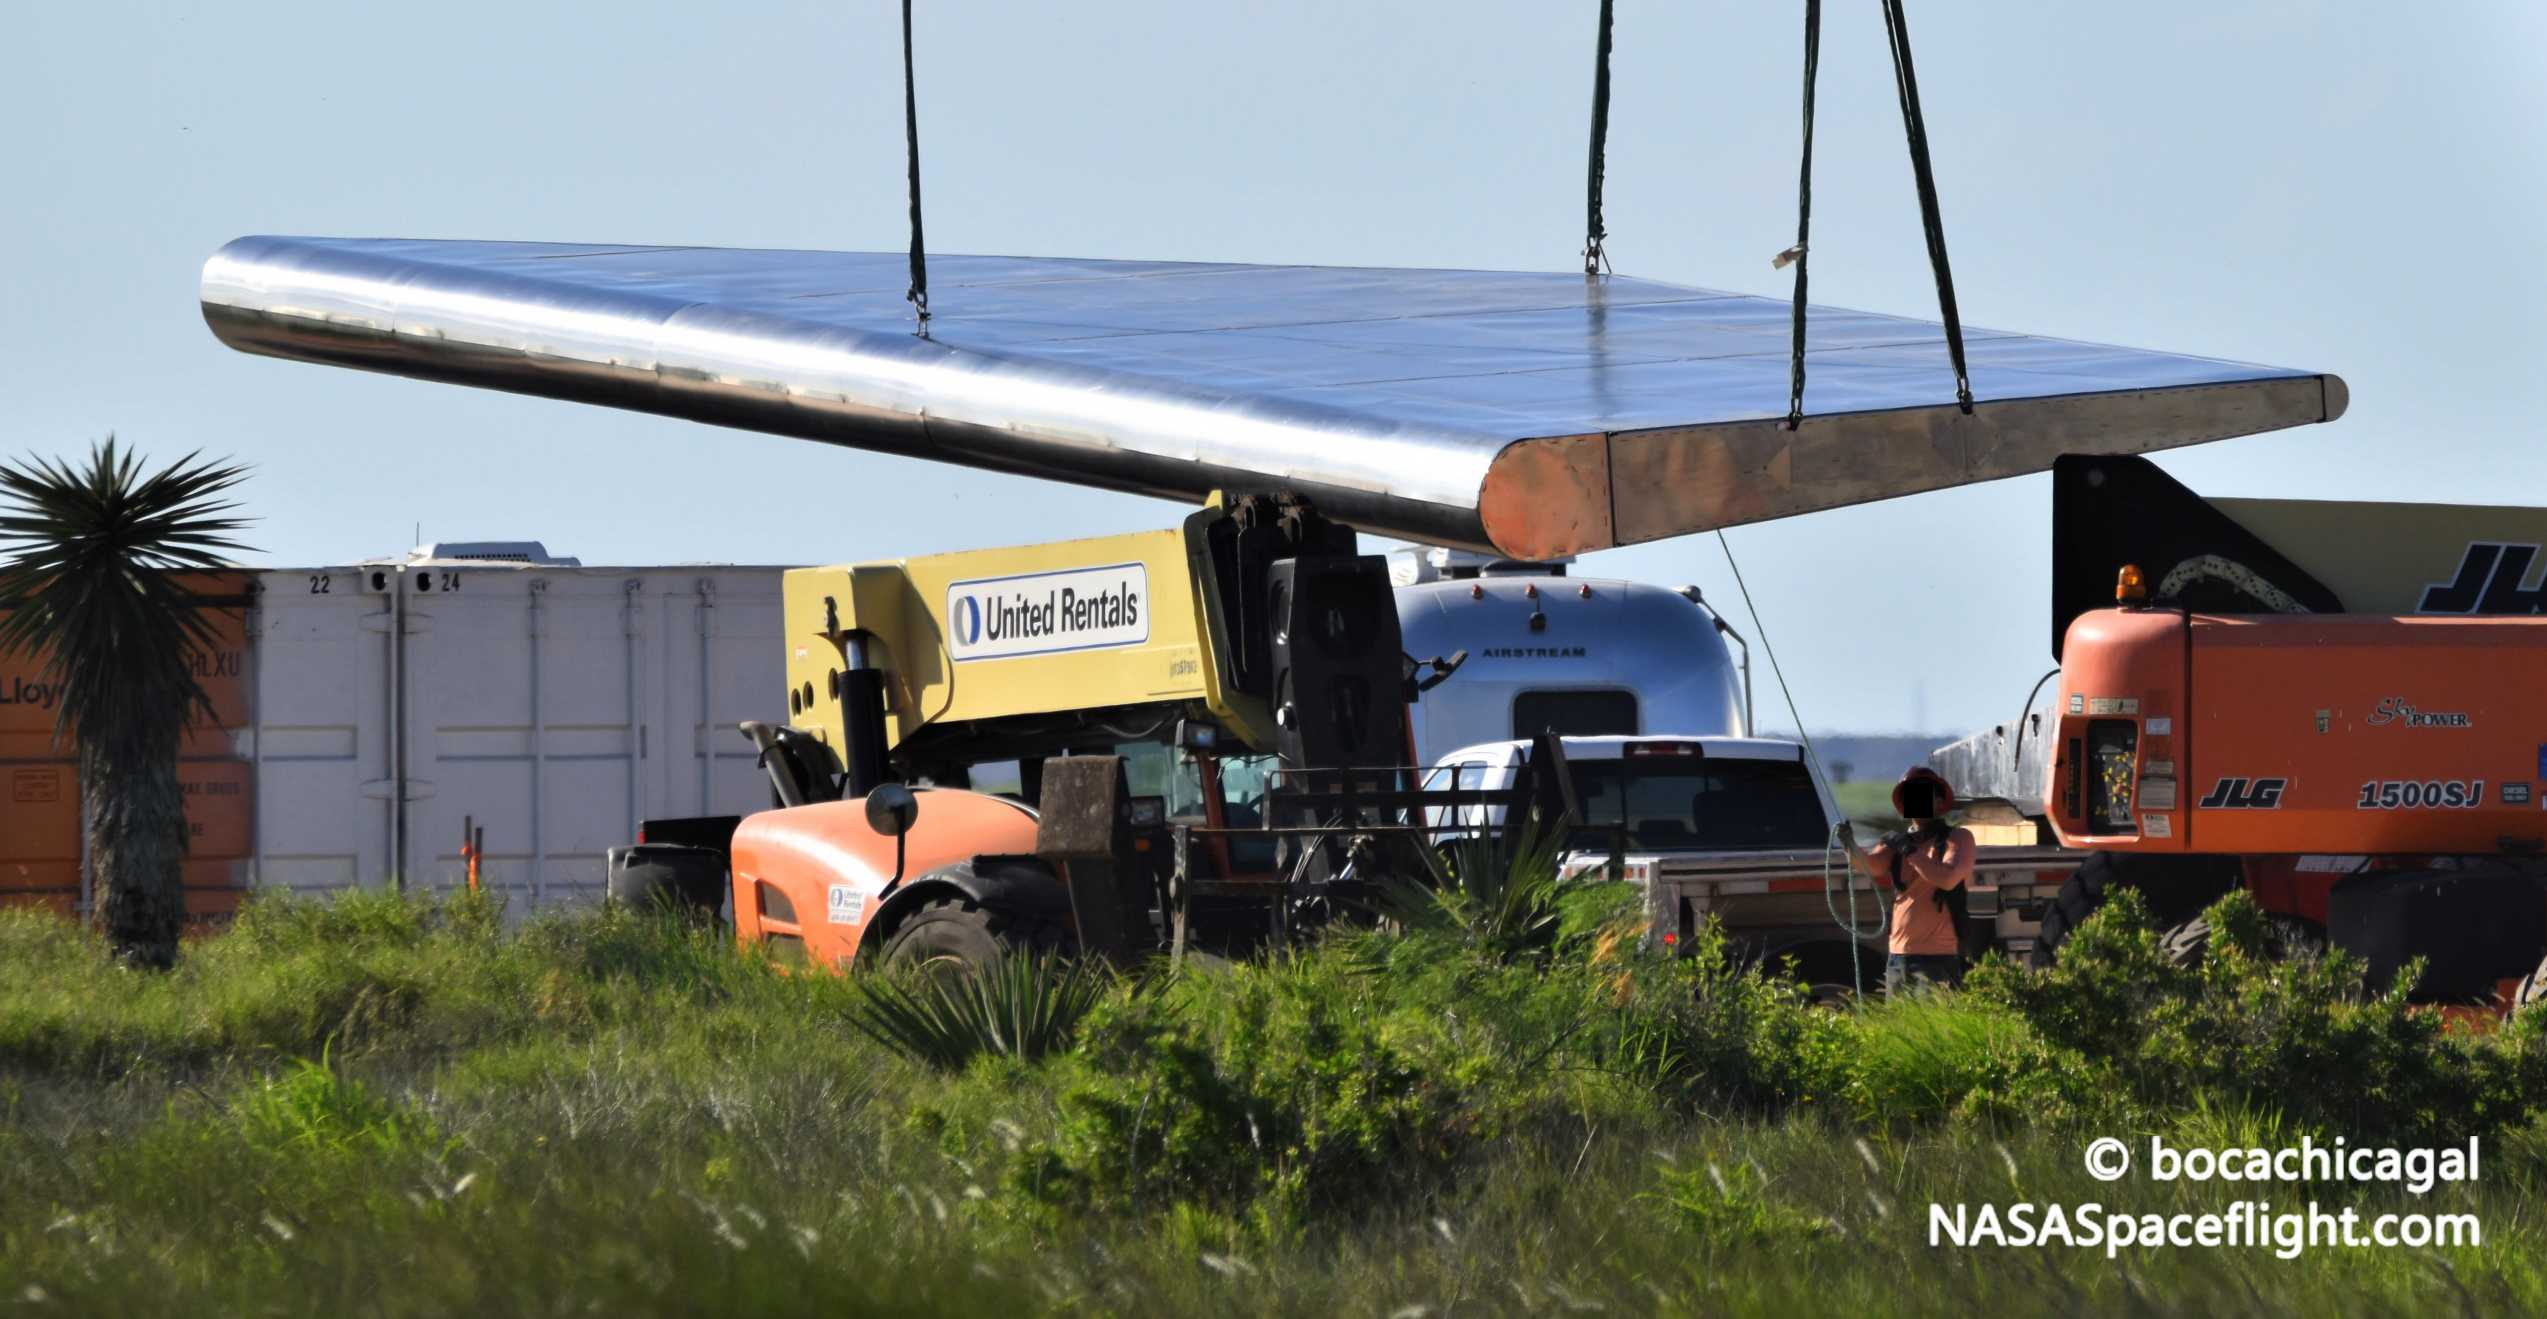 Starship Boca Chica 061220 (NASASpaceflight – bocachicagal) new flaps 4 crop (c)